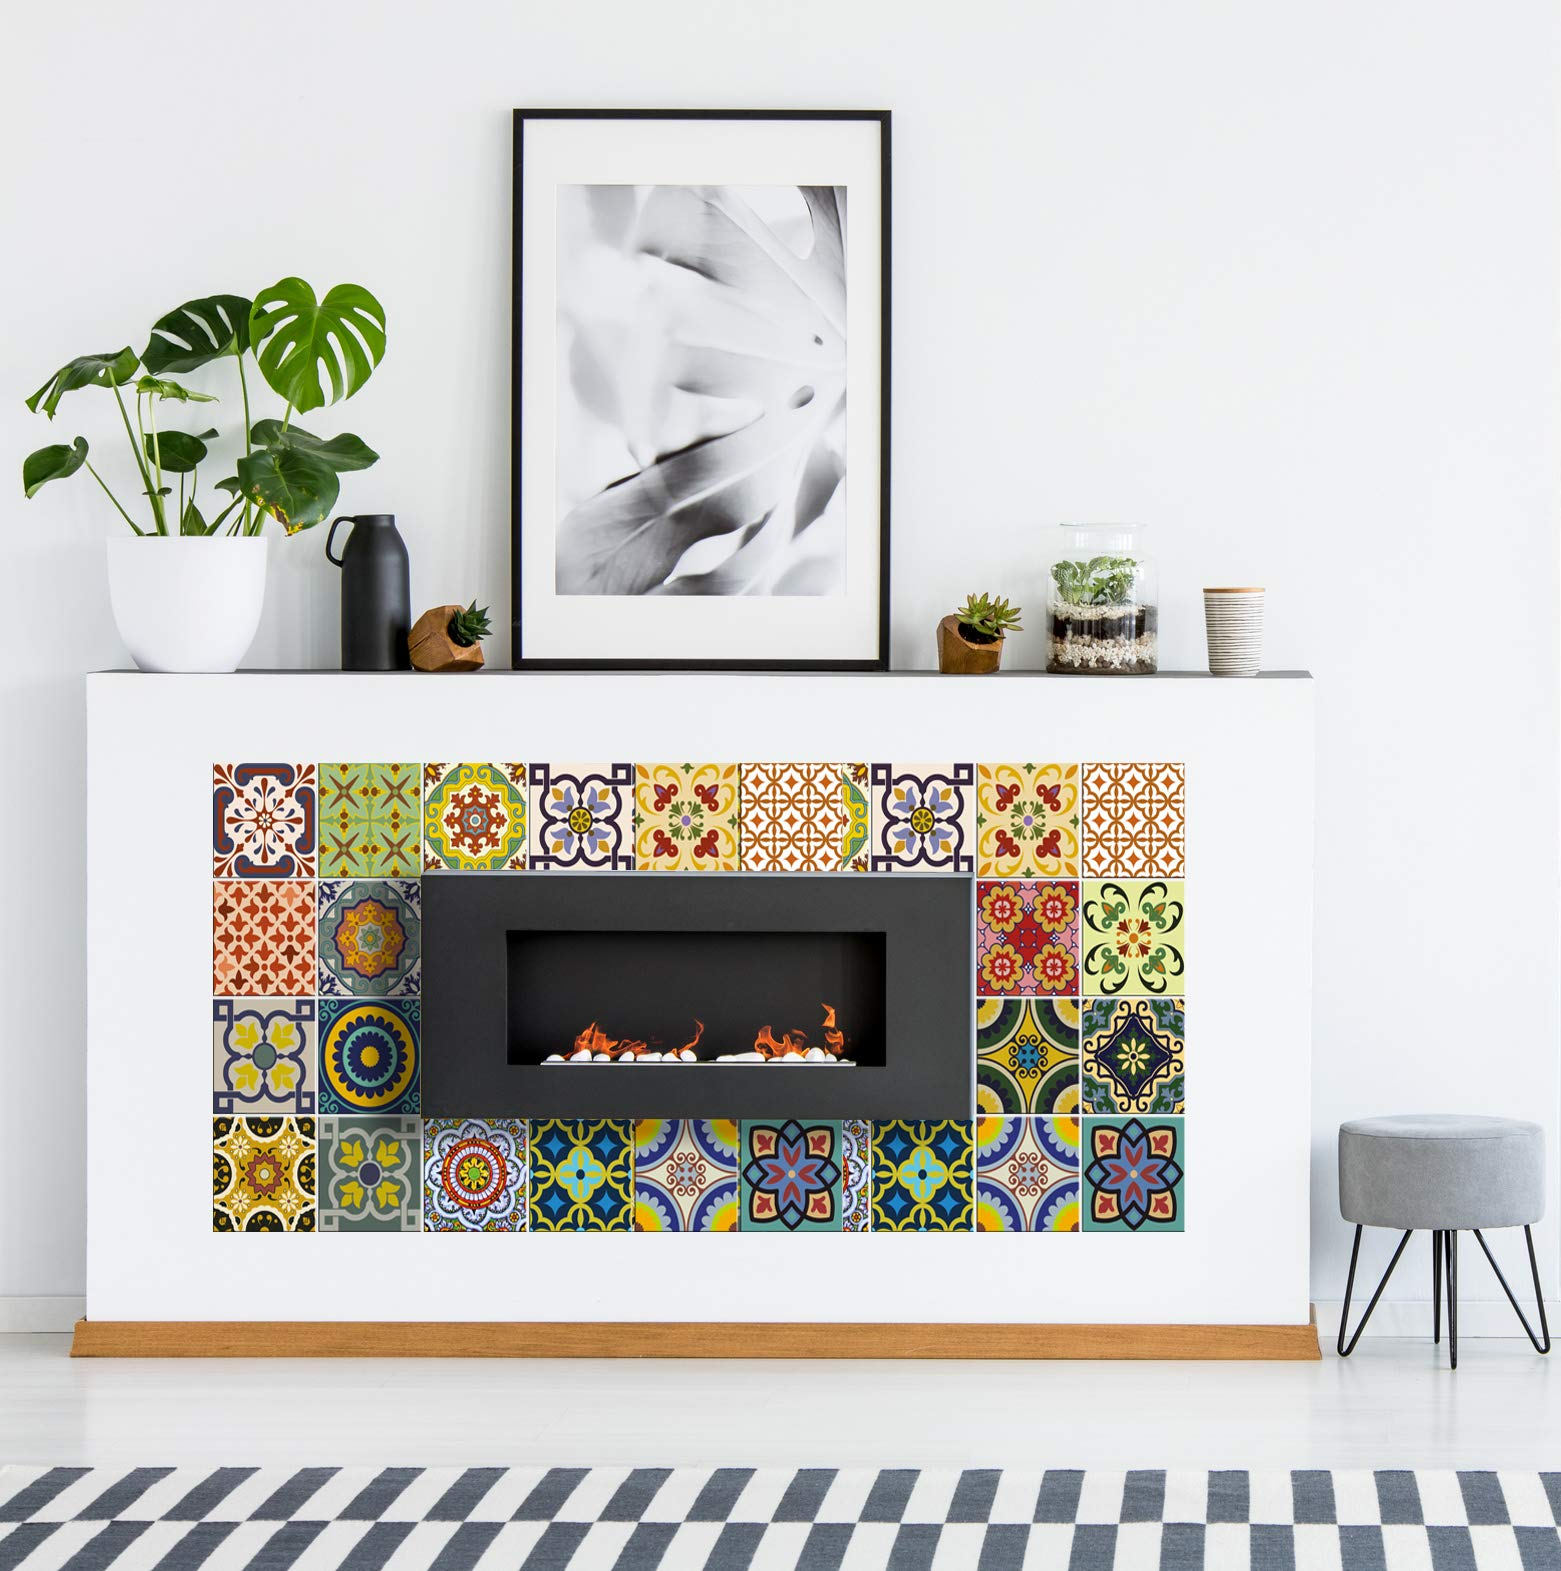 Tile Stickers 24 PC Set Traditional Talavera Tiles Stickers Bathroom & Kitchen Tile Decals Easy to Apply Just Peel & Stick Home Decor 6x6 Inch (Kitchen Tiles Stickers C1) by Alma-Art (Image #9)